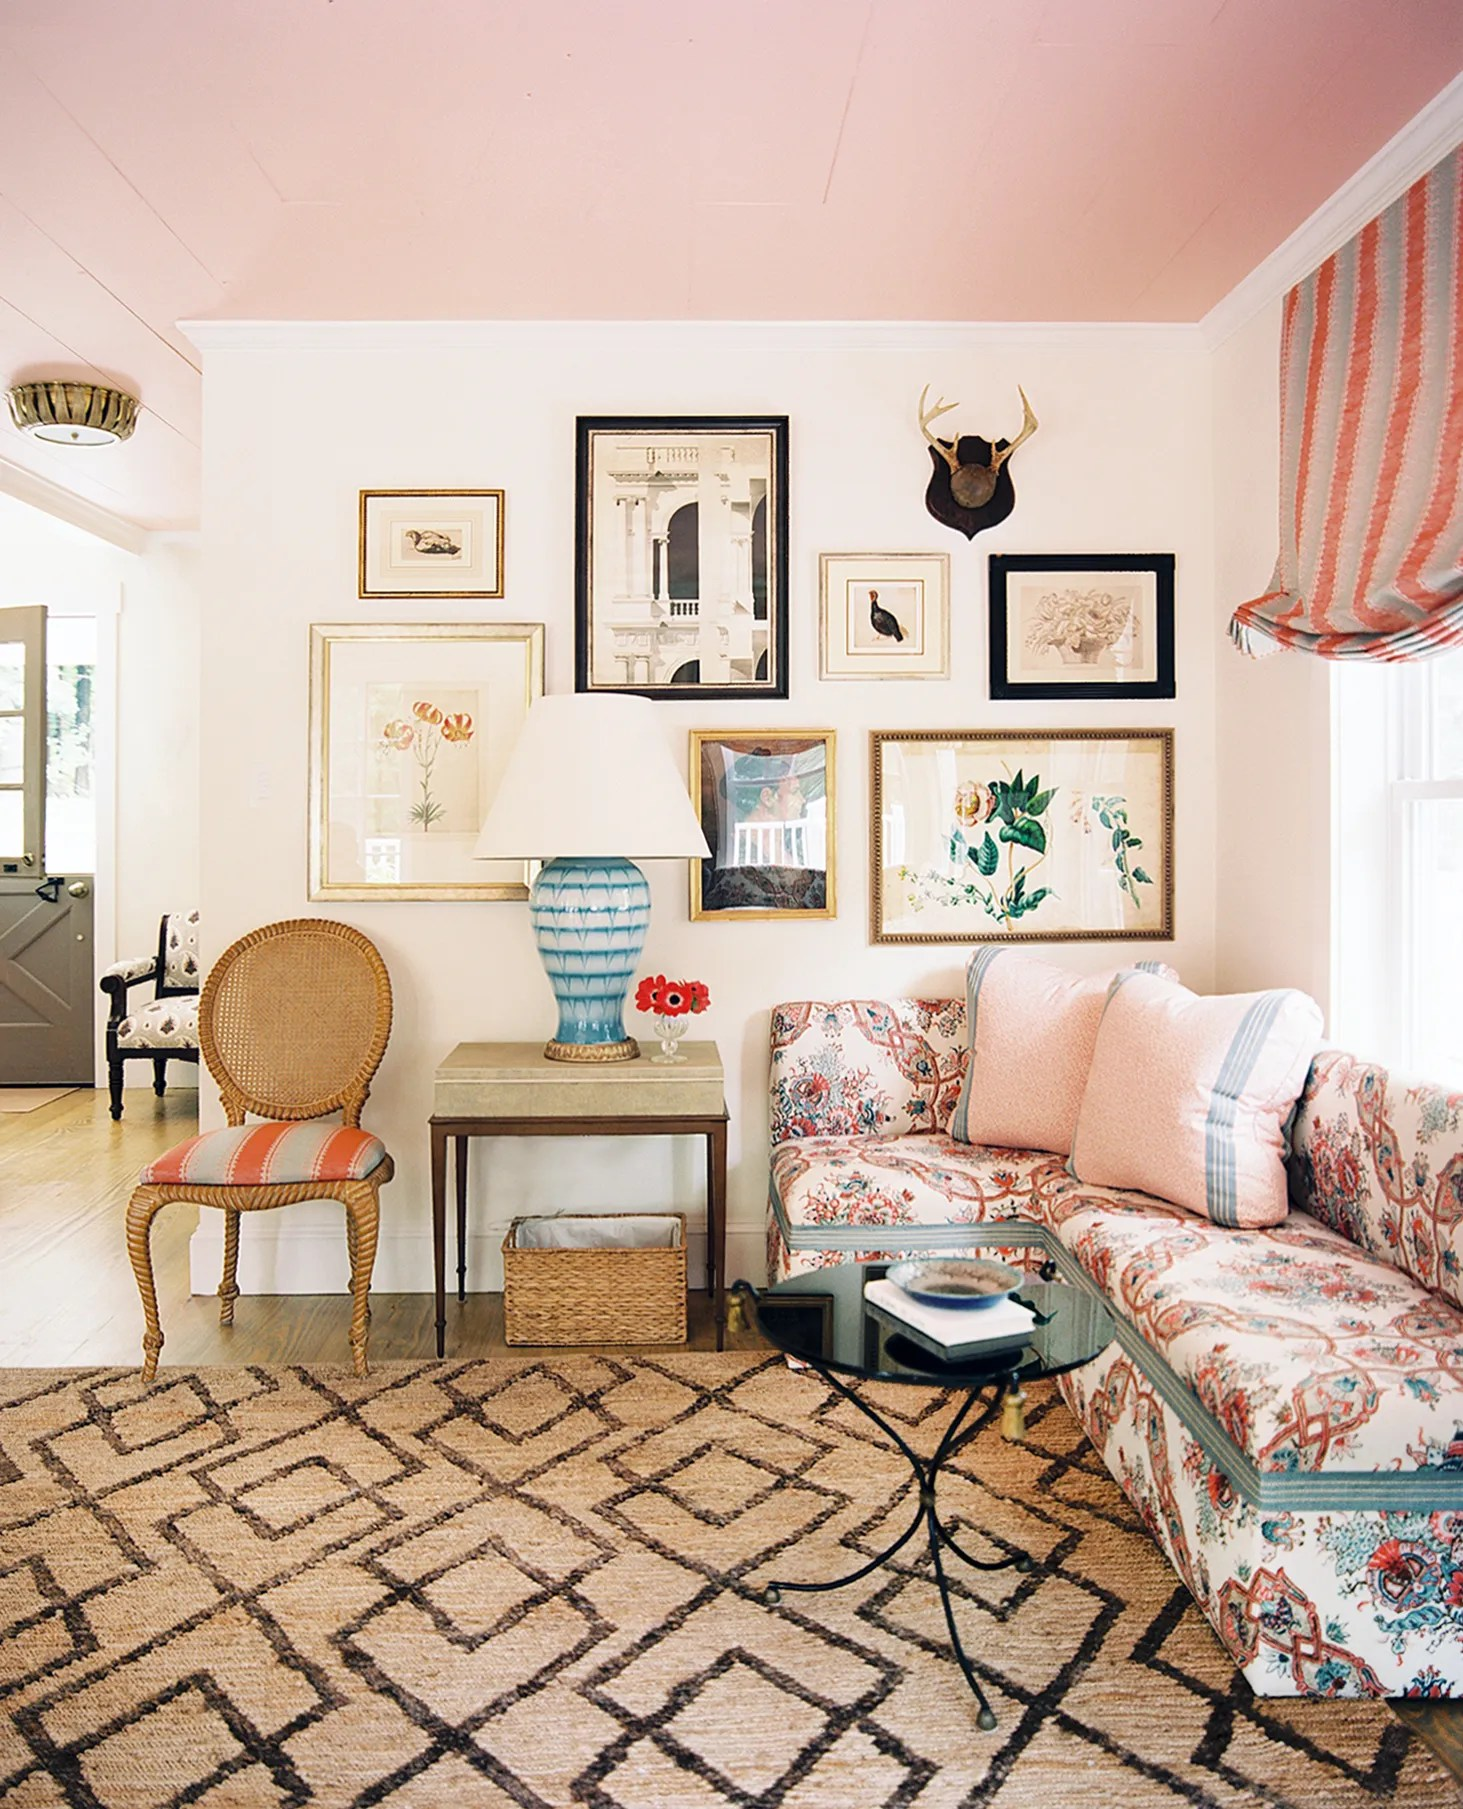 Find The Perfect Pink Paint Color The Experts Share Their Favorites Vogue